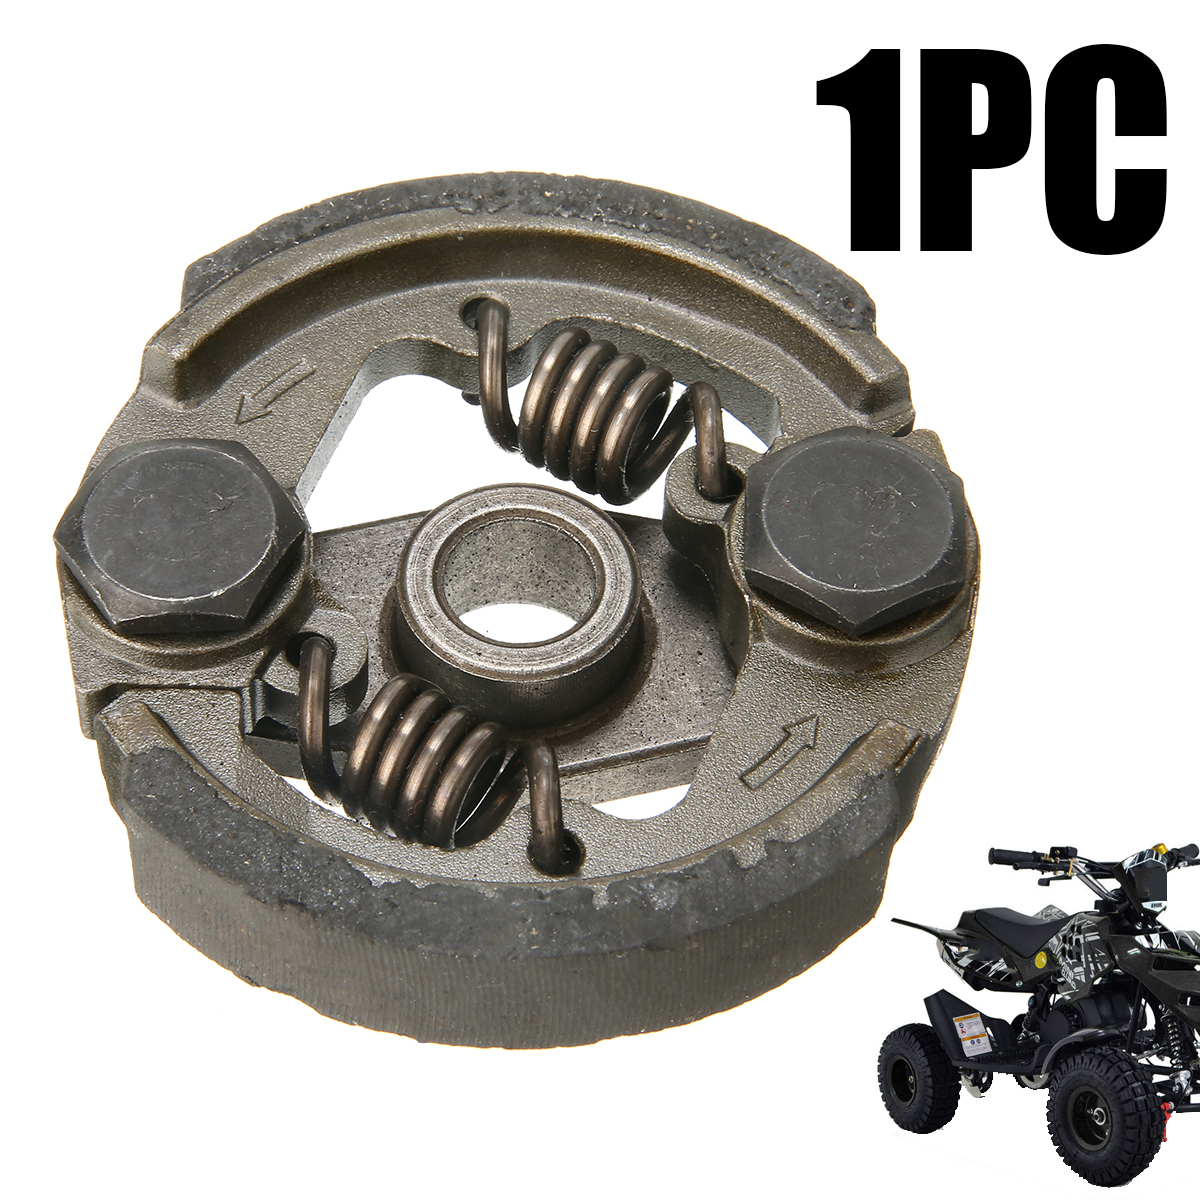 Mayitr 1PC 49cc Mini Moto Clutch Dirtbike Quad ATV Racing Bike Parts 2 Shoe 2 Spring Fits Cranks With OR Without Key Ways